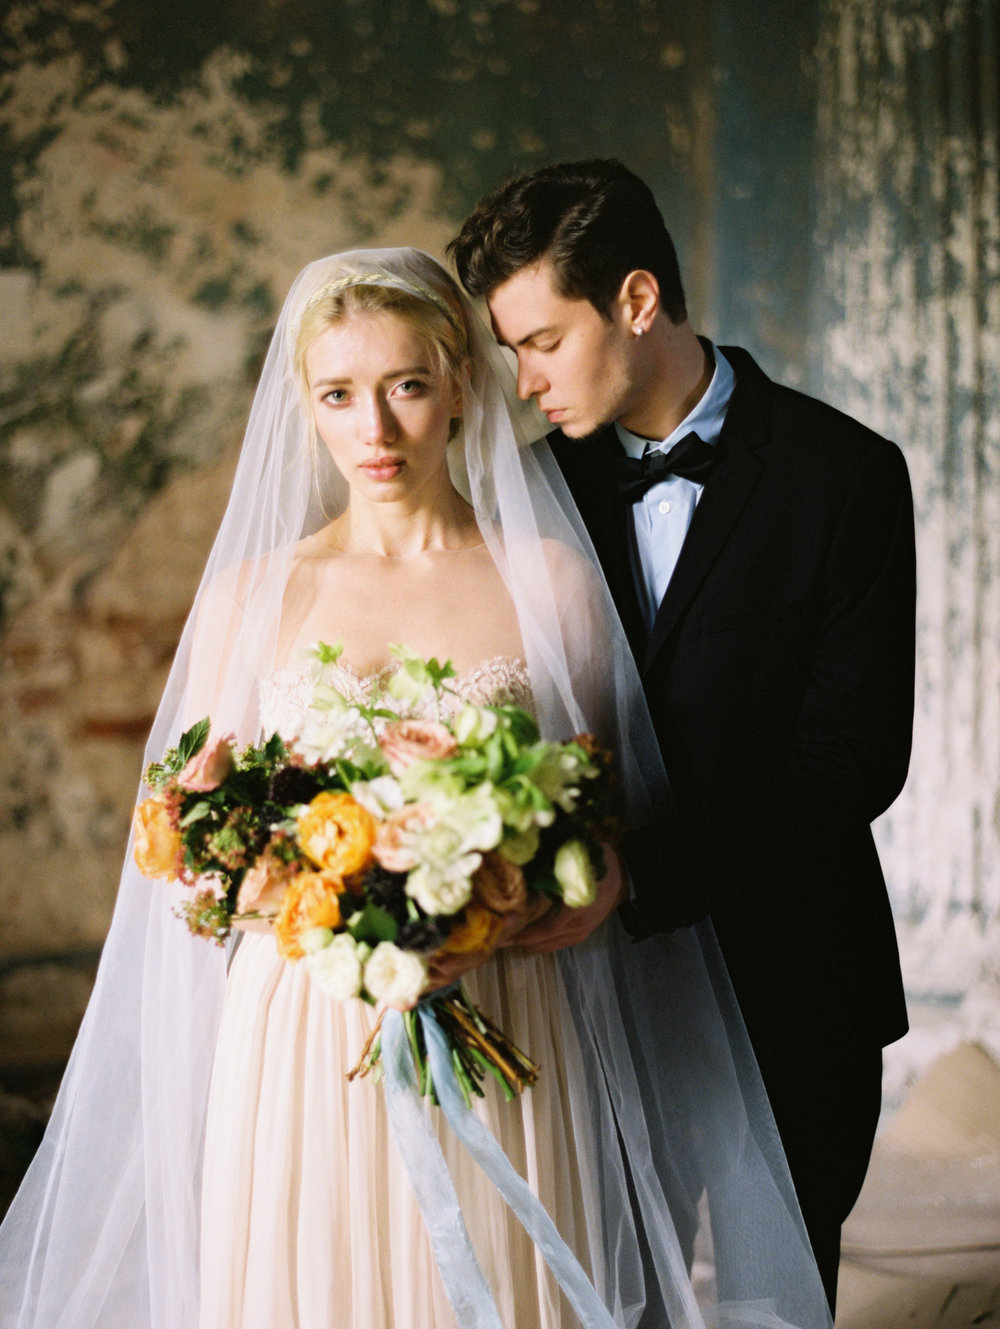 wedding-styled-shoot-russia-inspiration-elena-pavlova-photography-metamorphoses-orpheus-eurydice (30).jpg